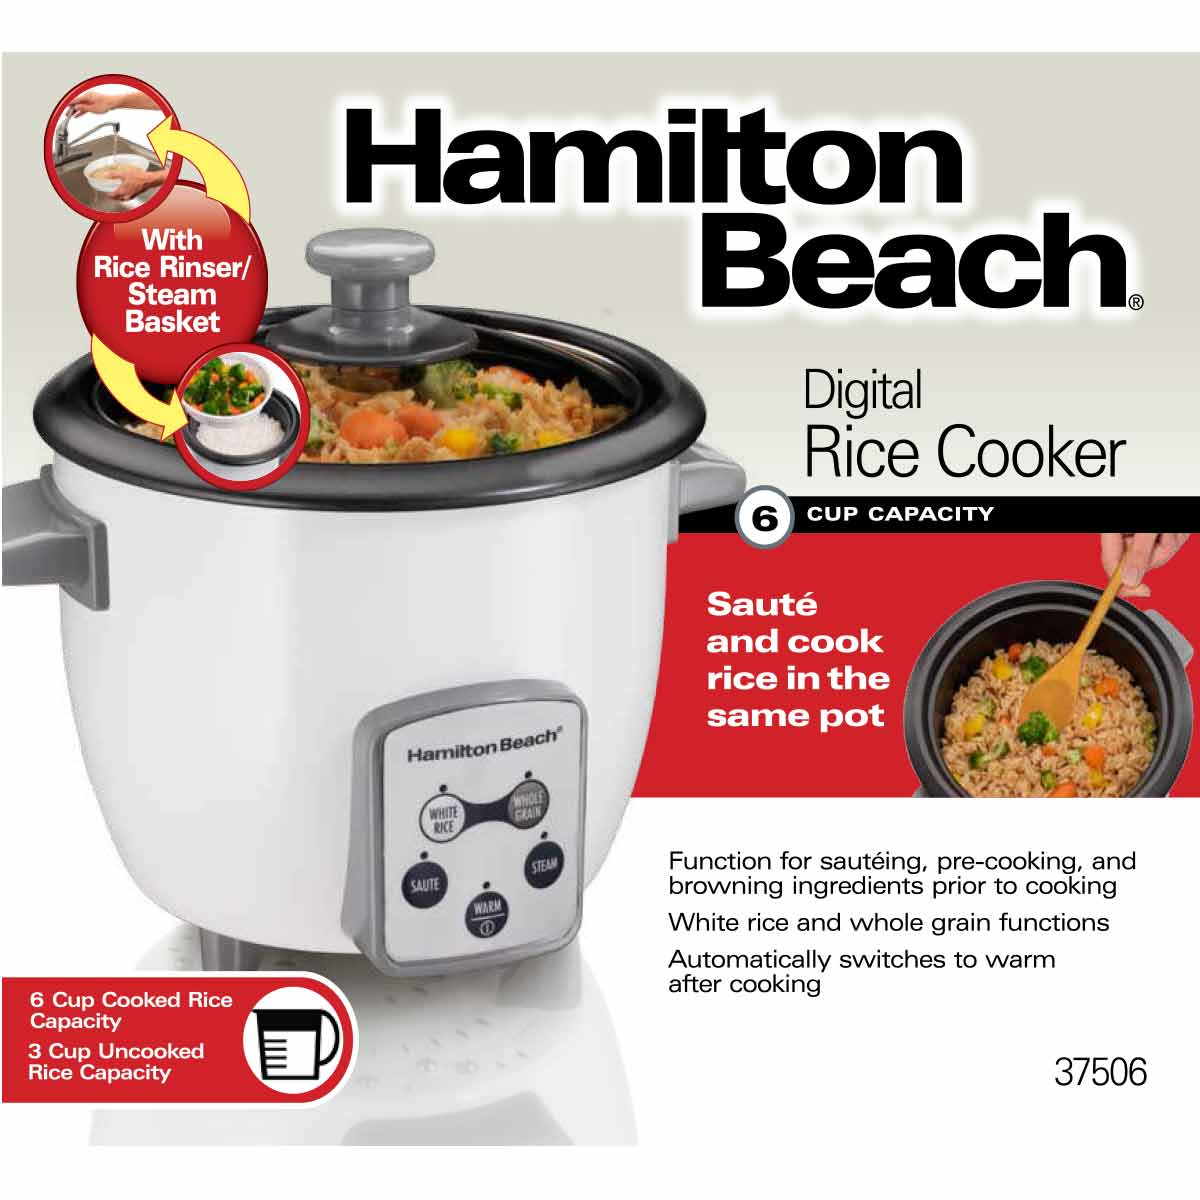 6 Cup Capacity (Cooked) Digital Rice Cooker (37506)